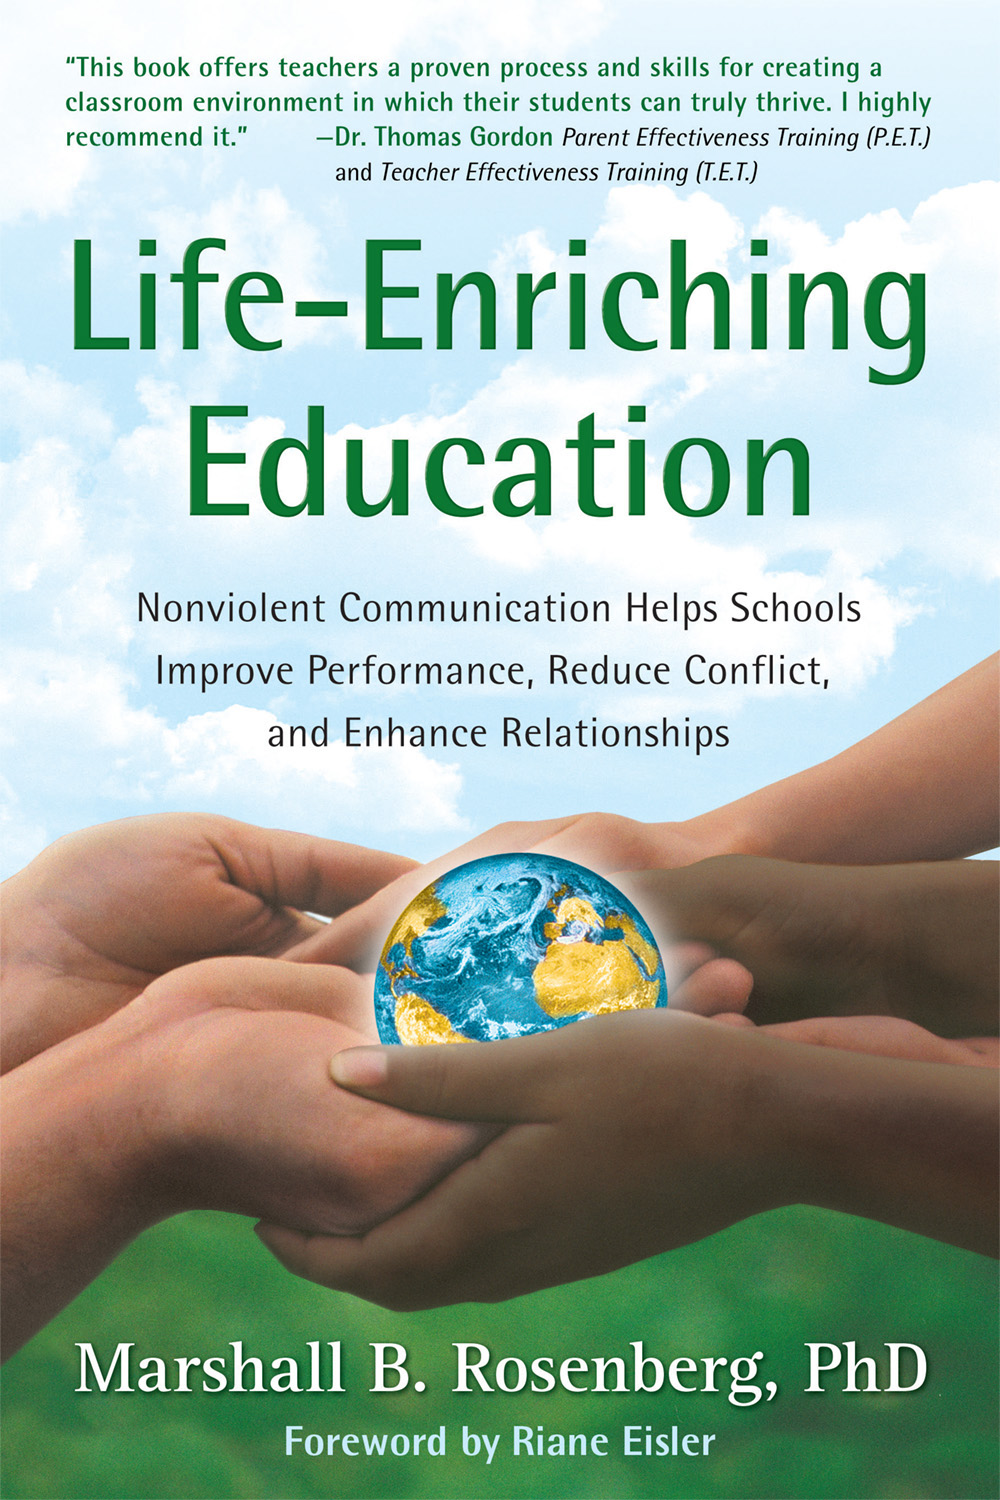 Life-Enriching Education Book Cover